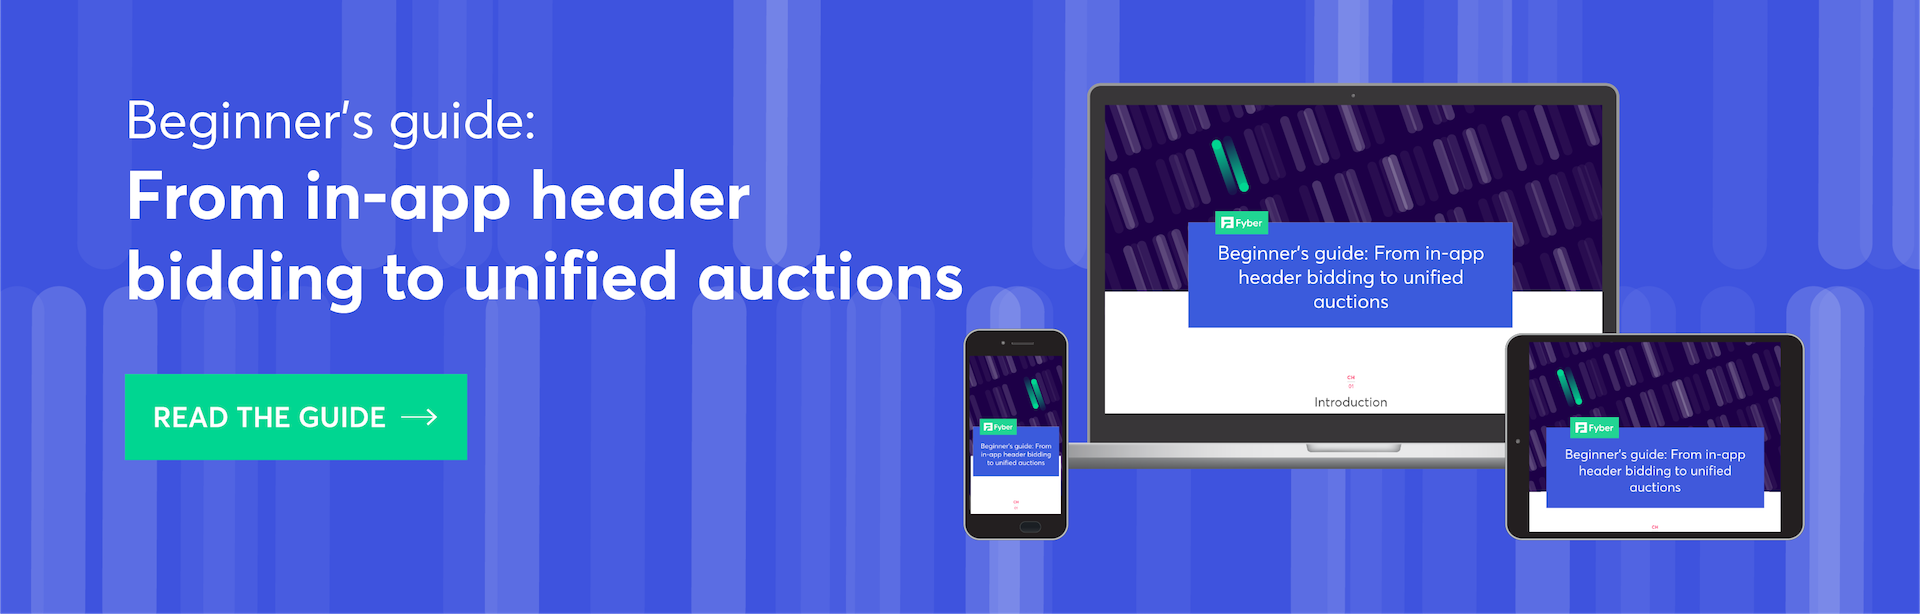 Unified auction guide